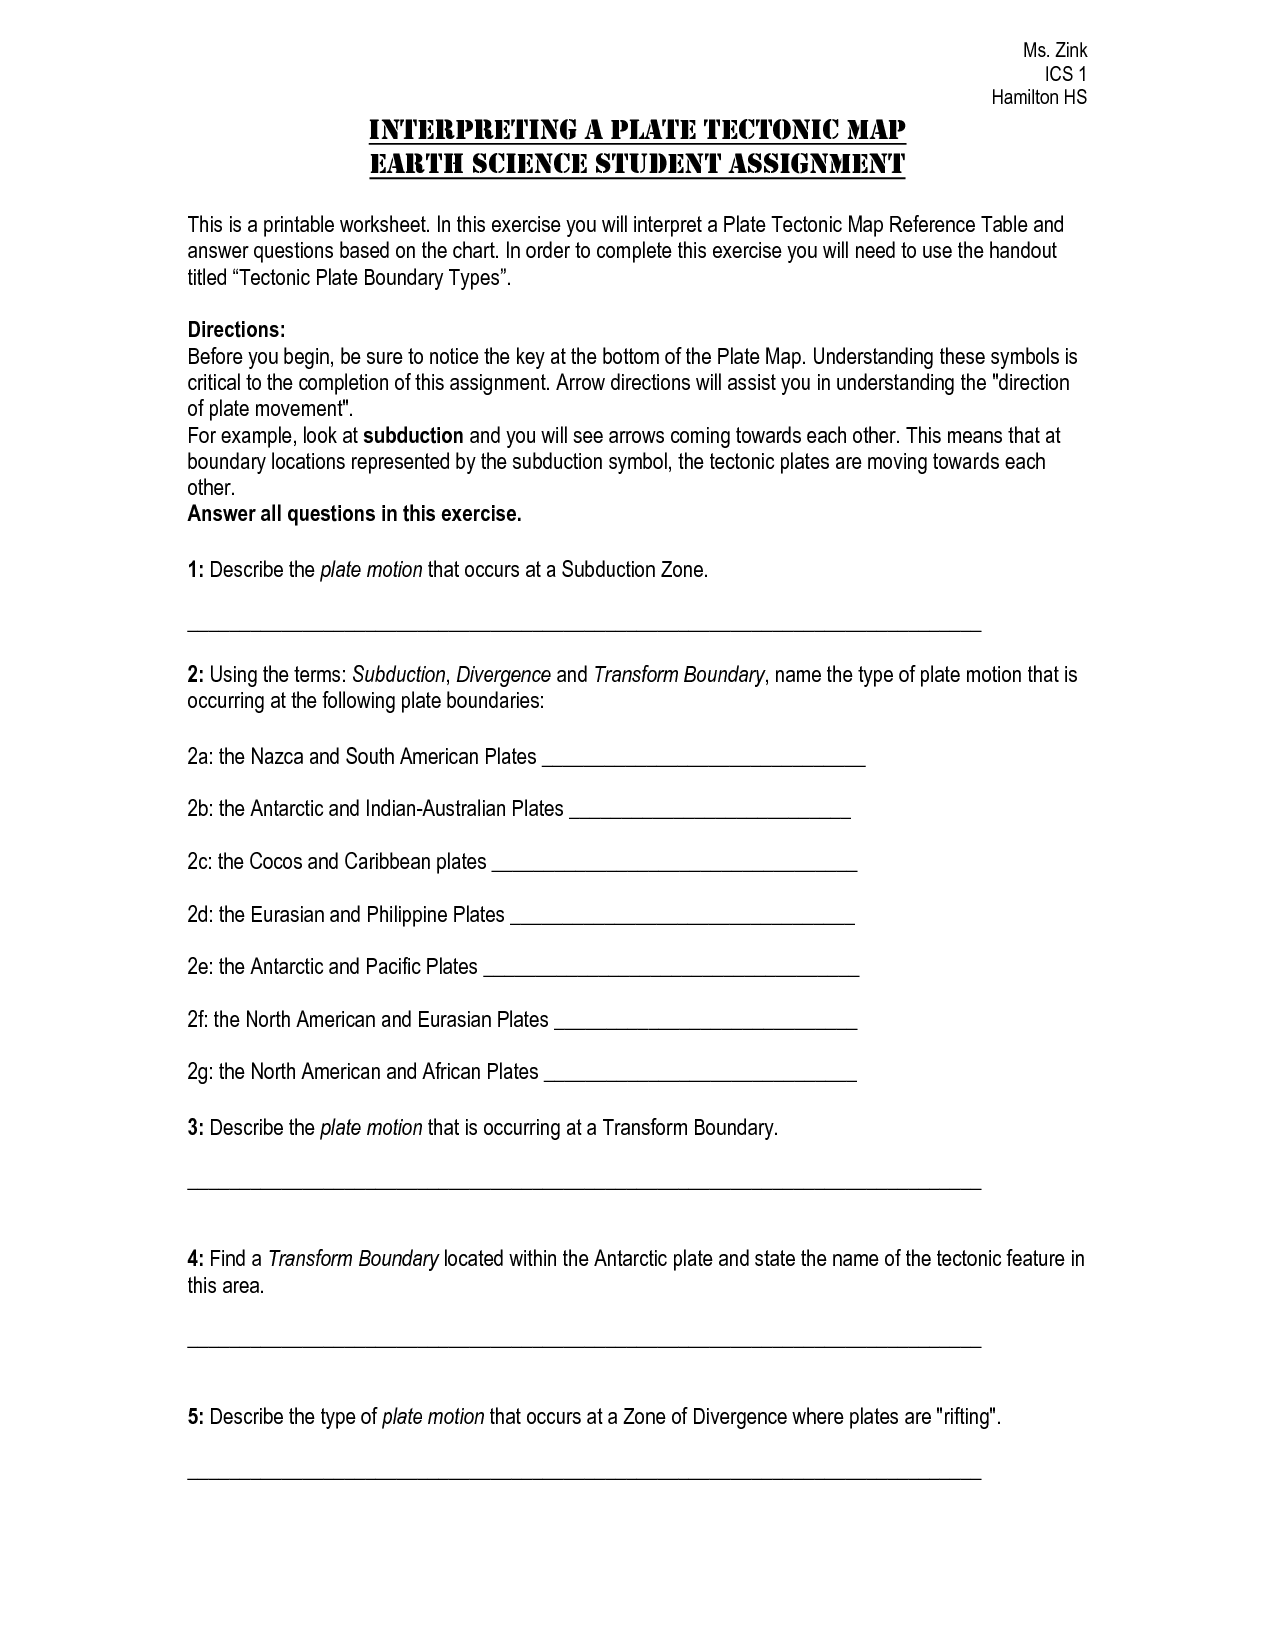 30 Plate Tectonics Worksheet Answers